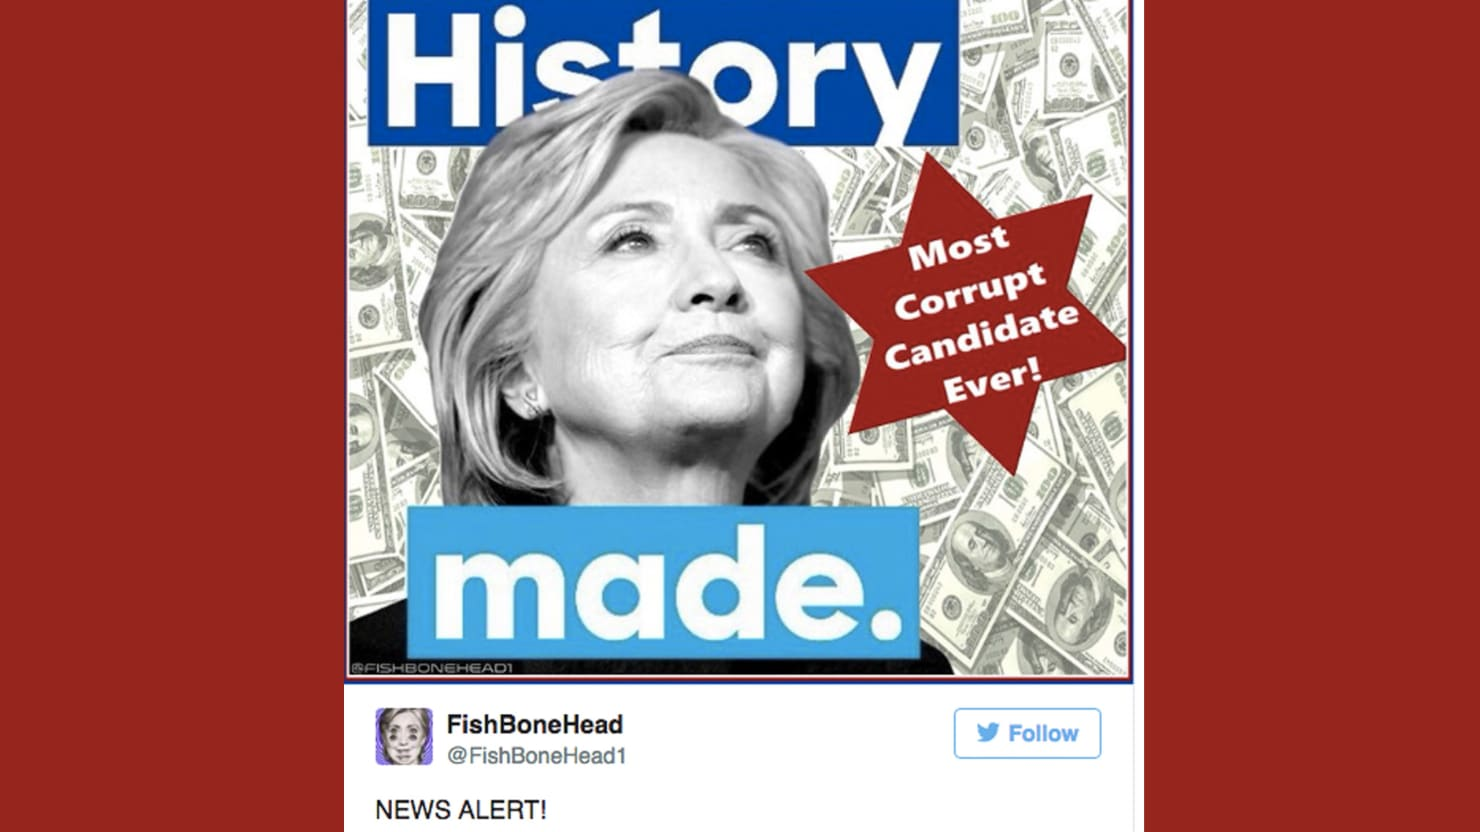 Trumps Star Of David Hillary Meme Was Made By Racist